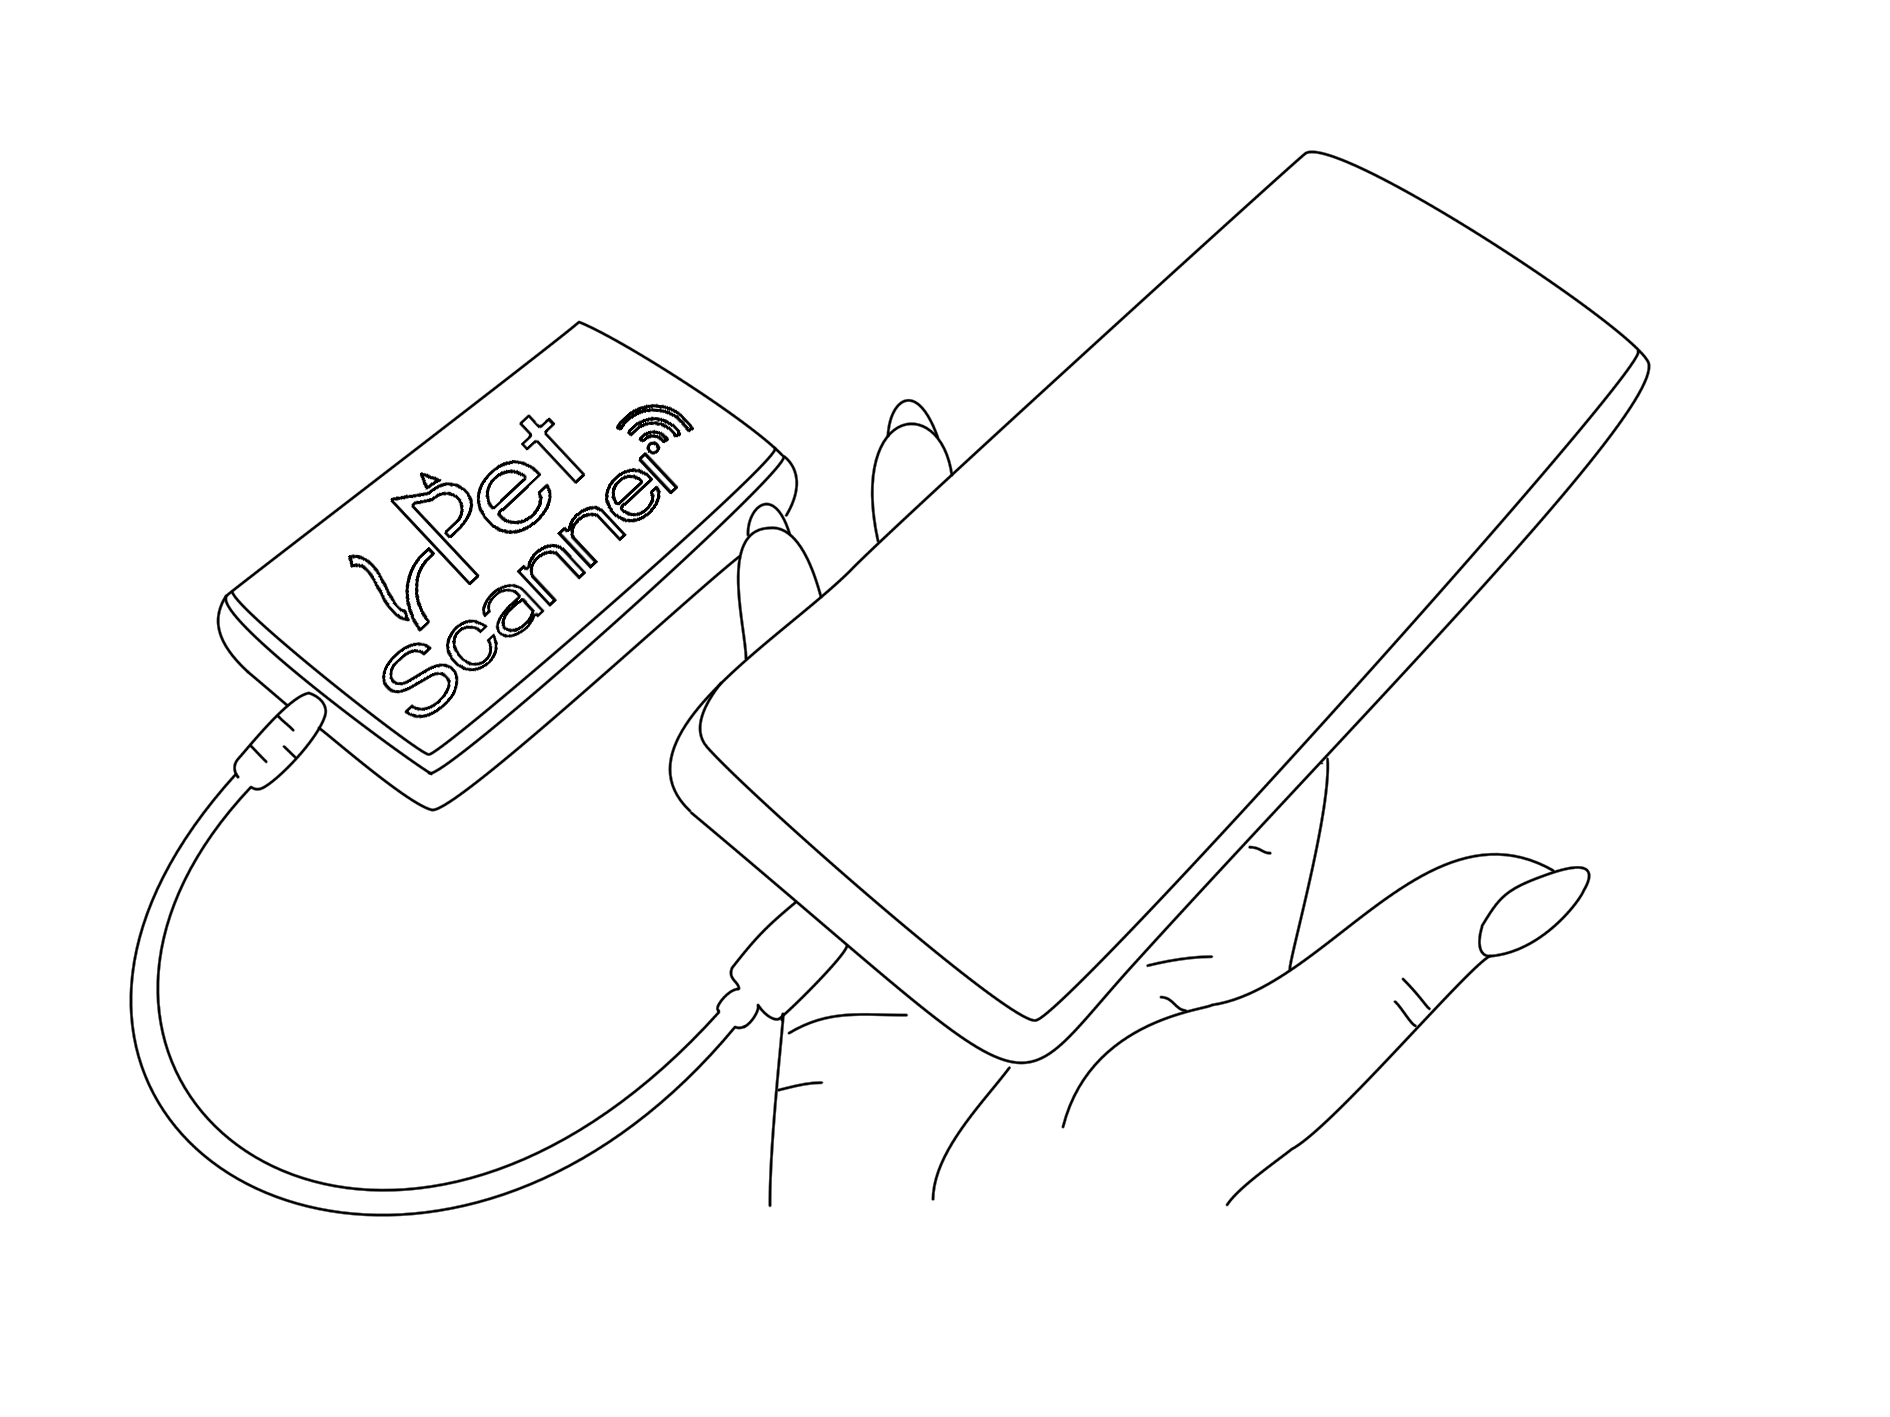 Line drawing of PetScanner reader and app